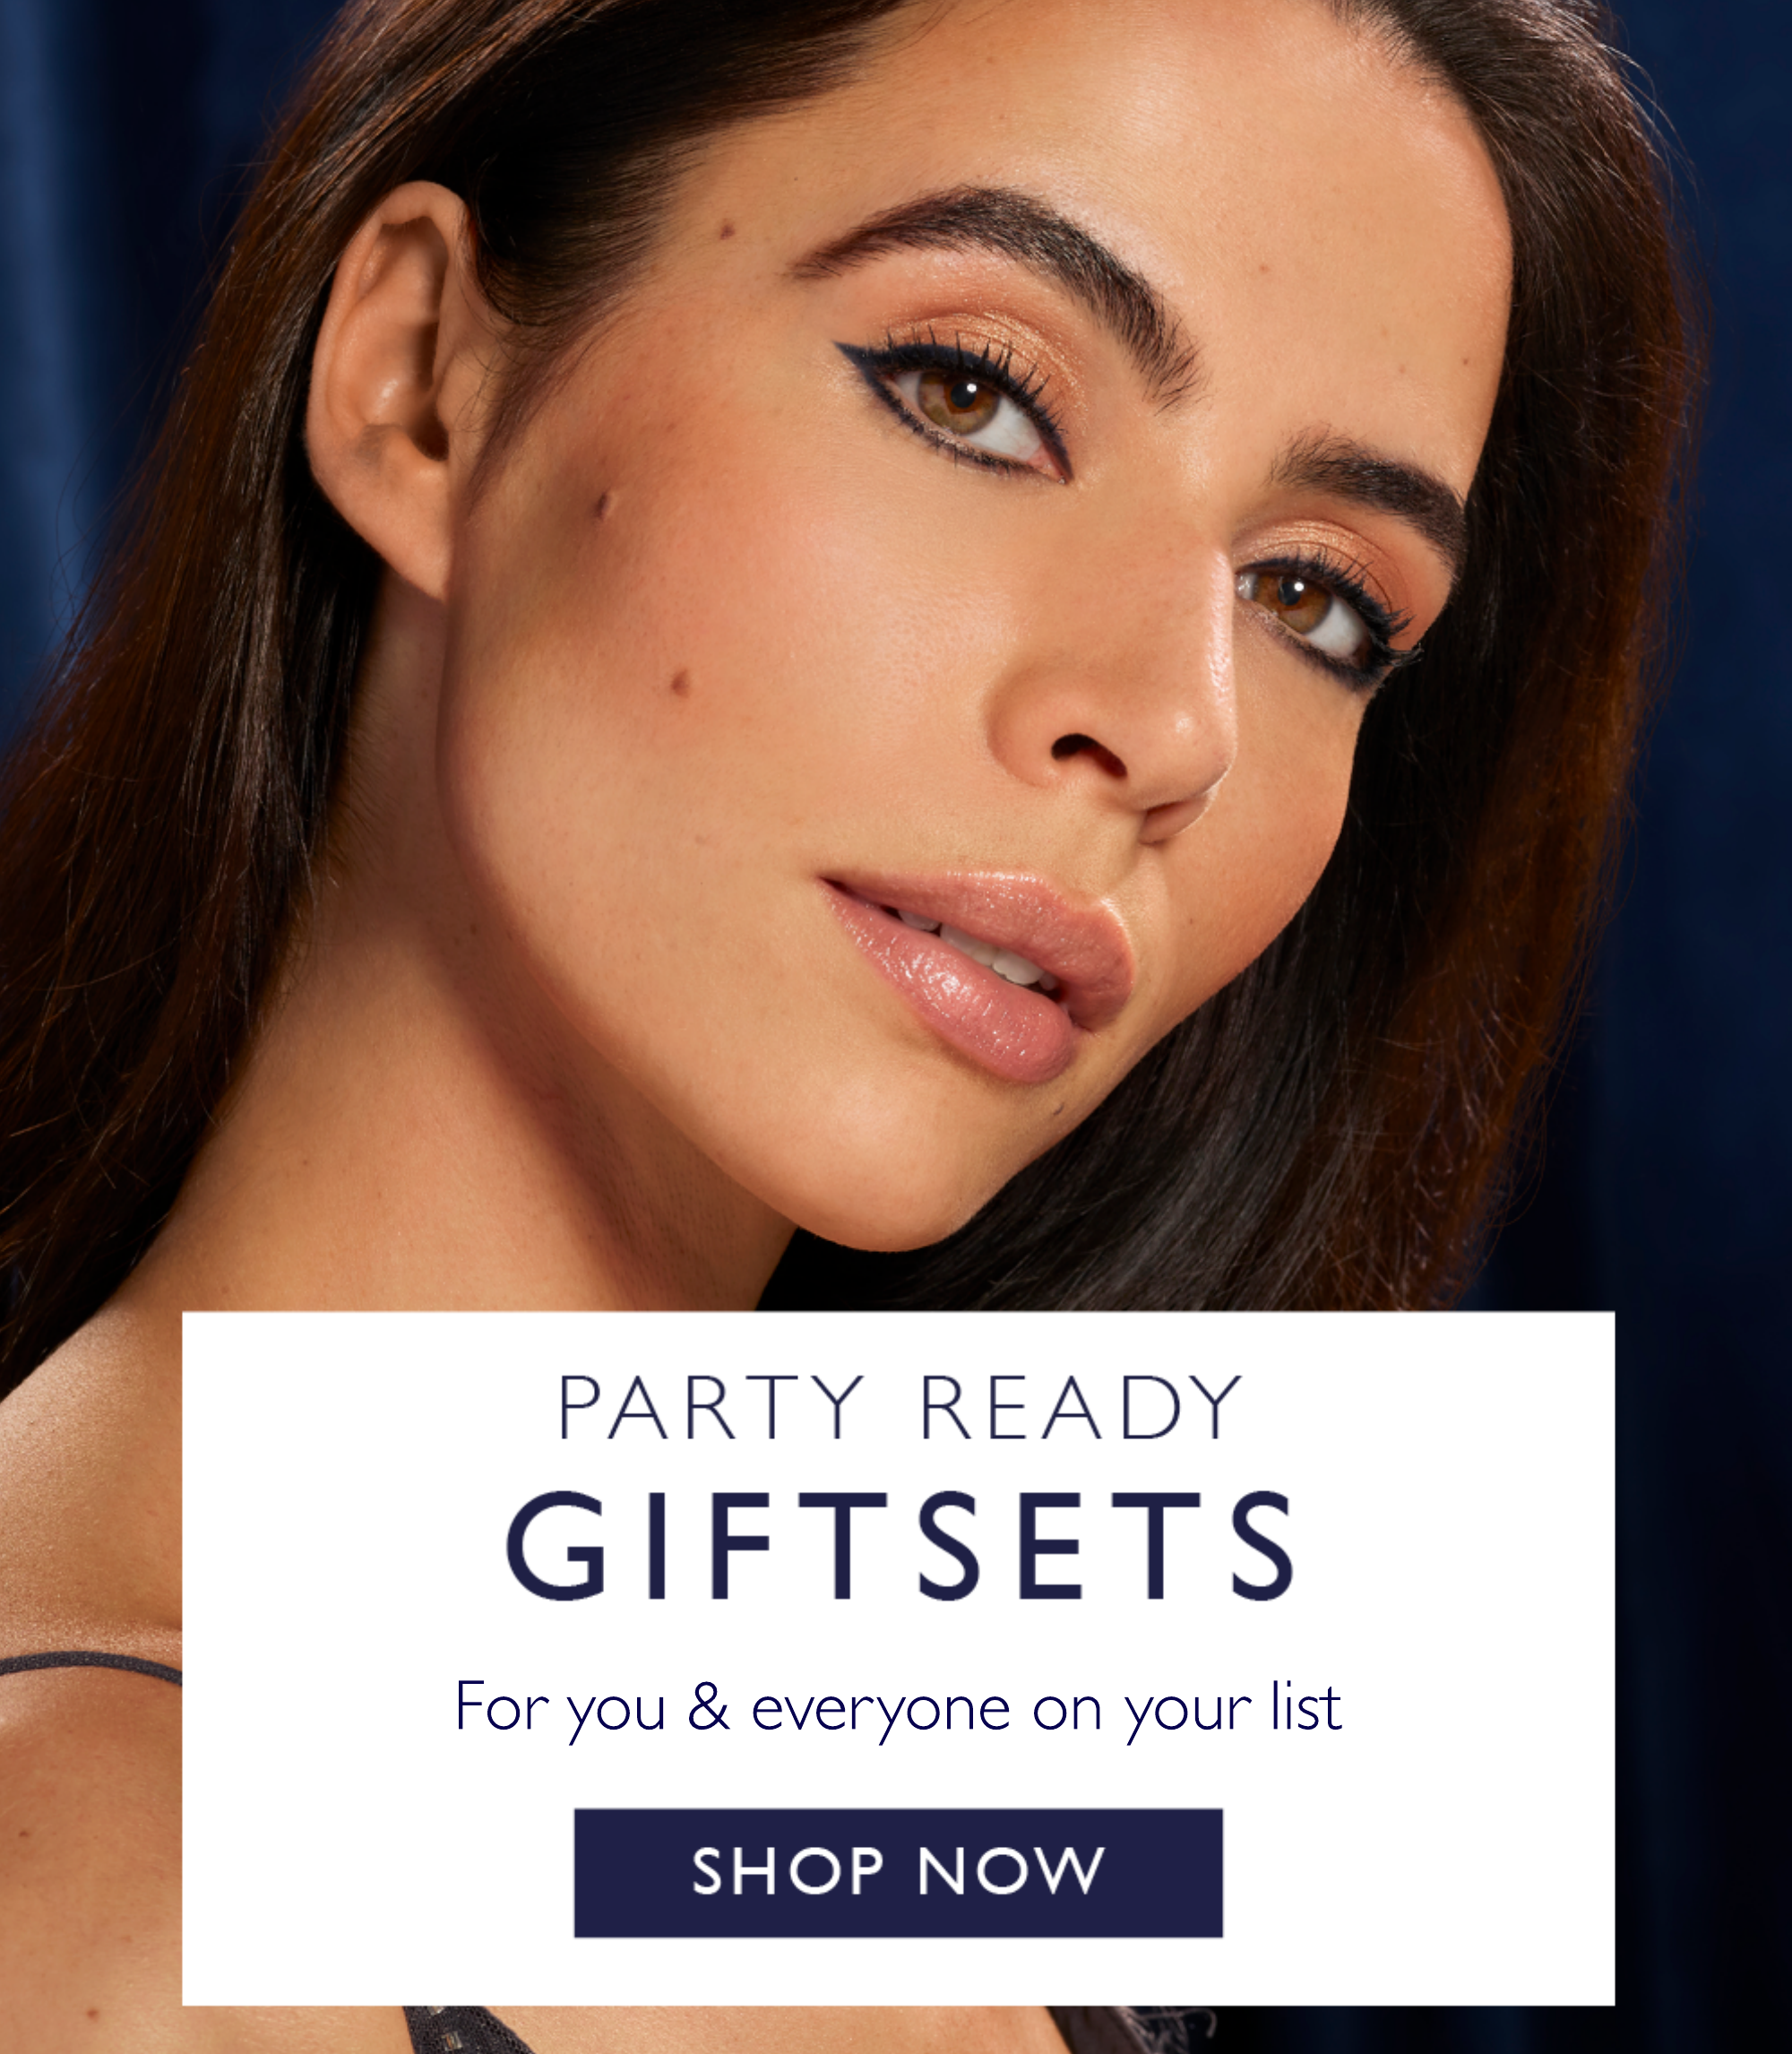 Giftsets for you & everyone on your list